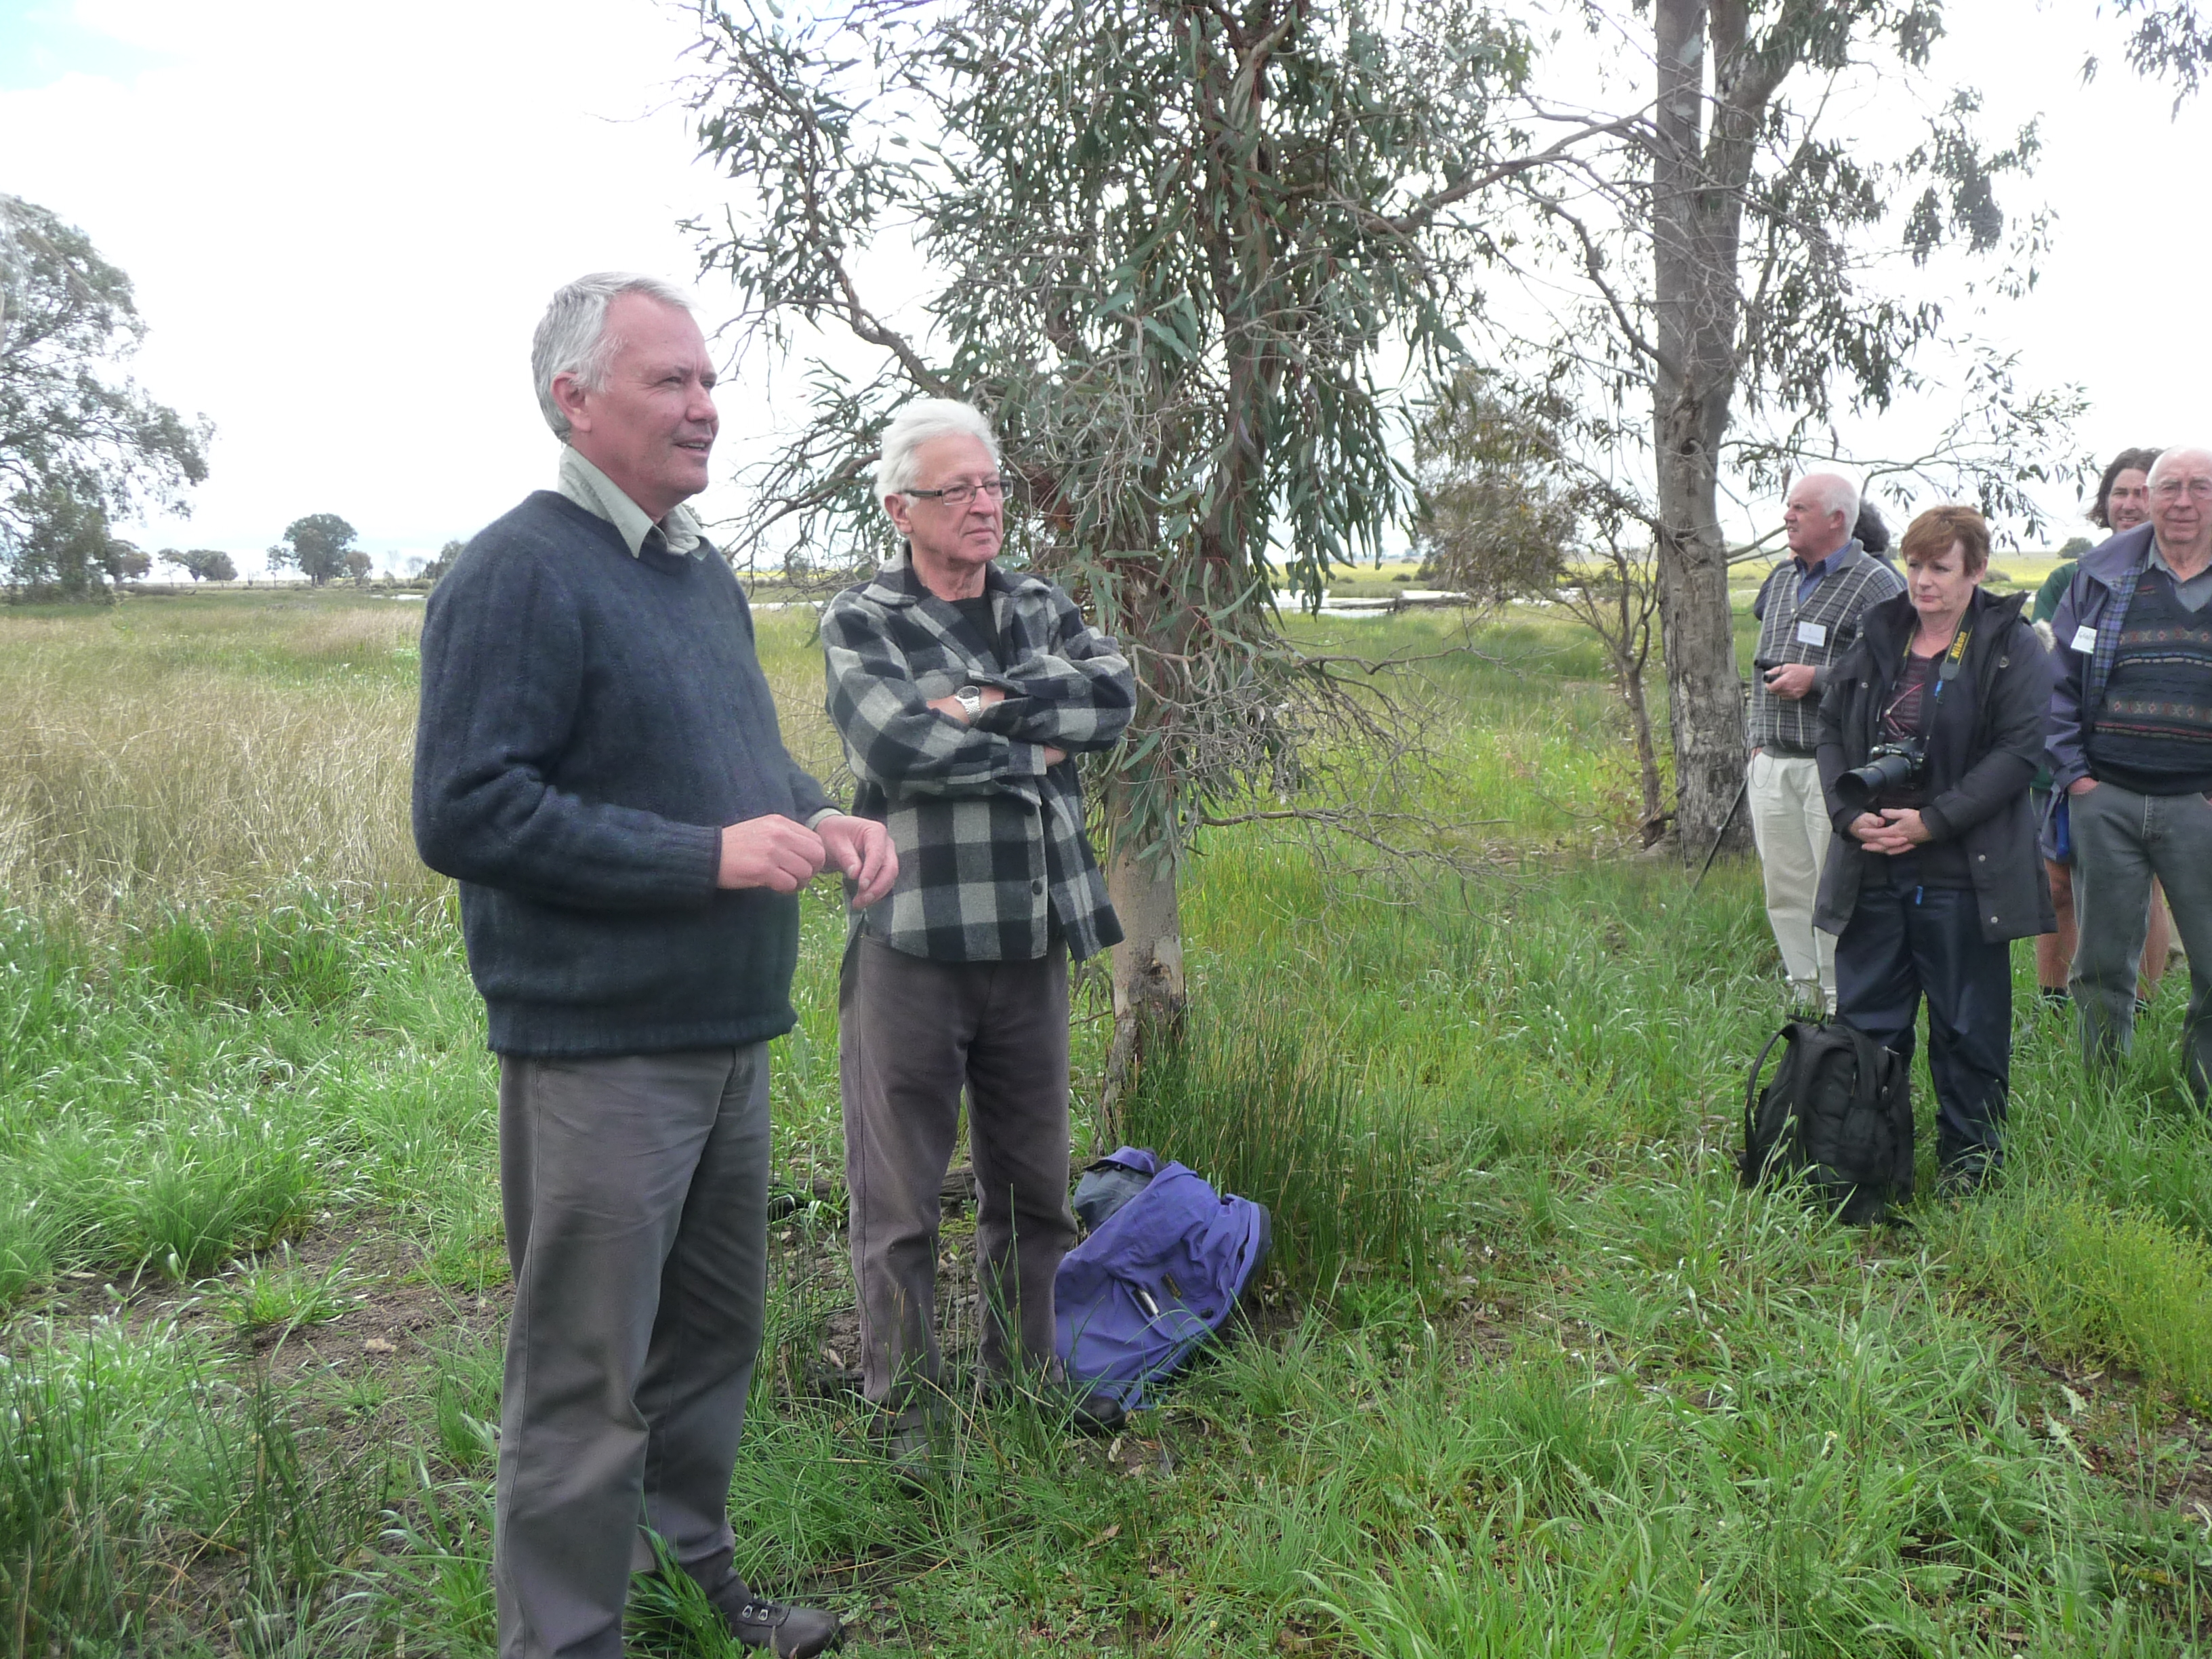 NWF Trustee Geoff Park with Raimond Gaita at Frogmore Swamp